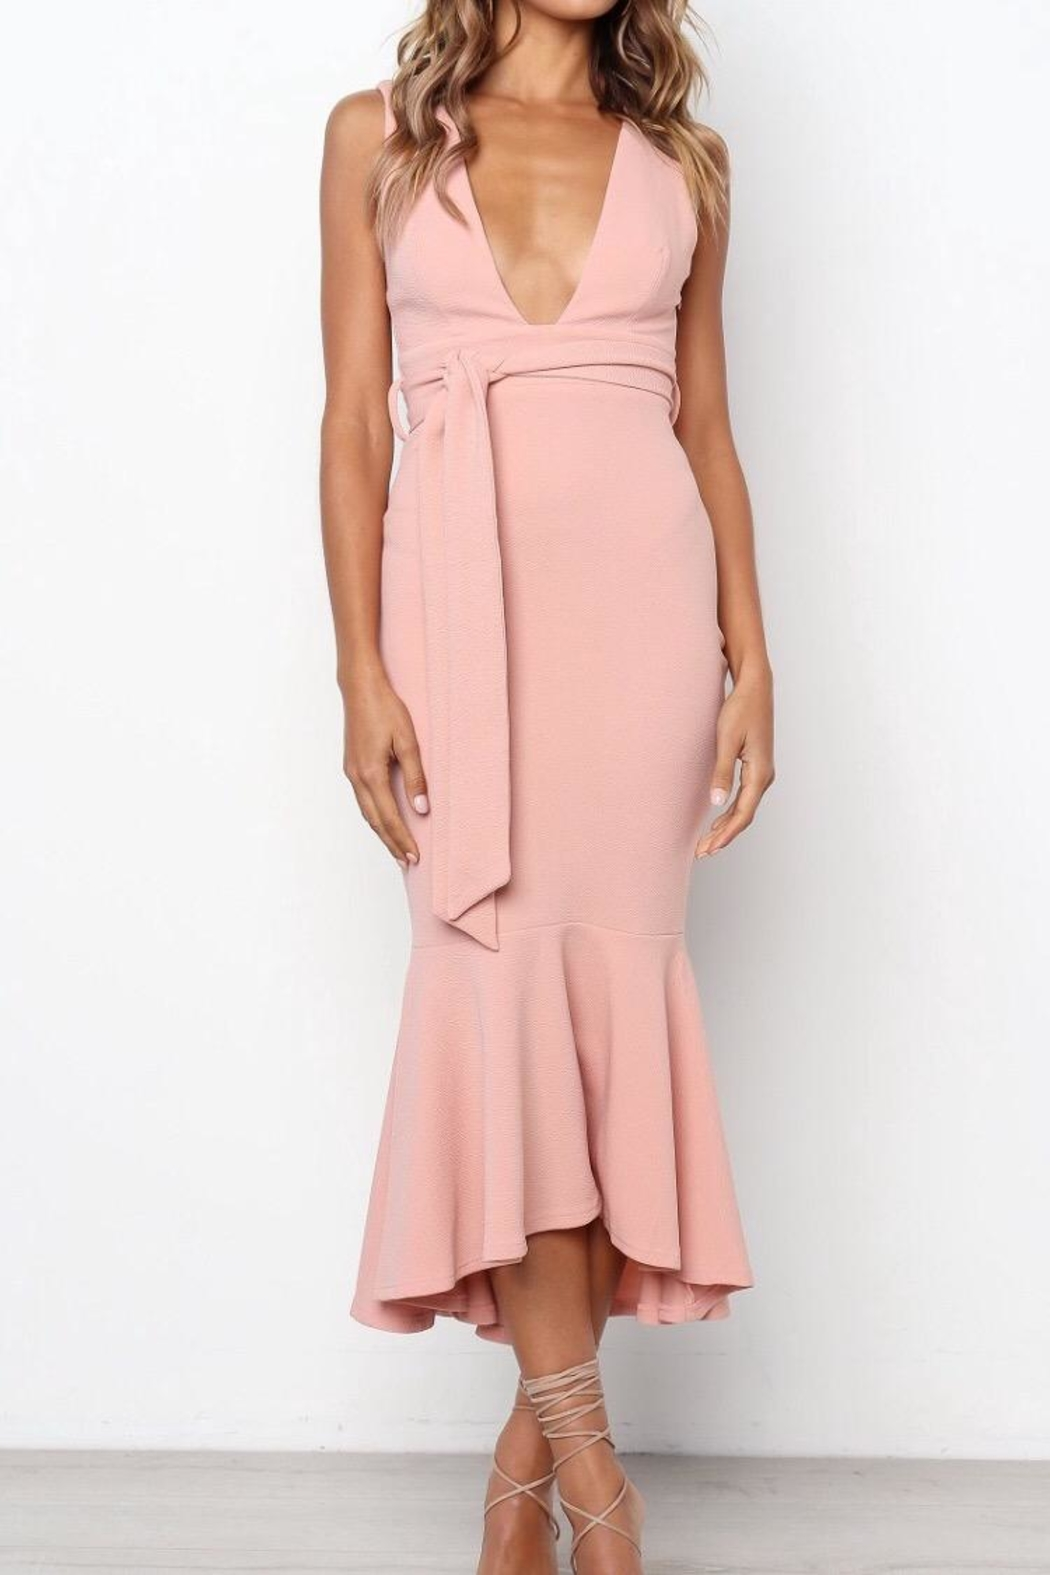 Chikas Blush Dress - Main Image